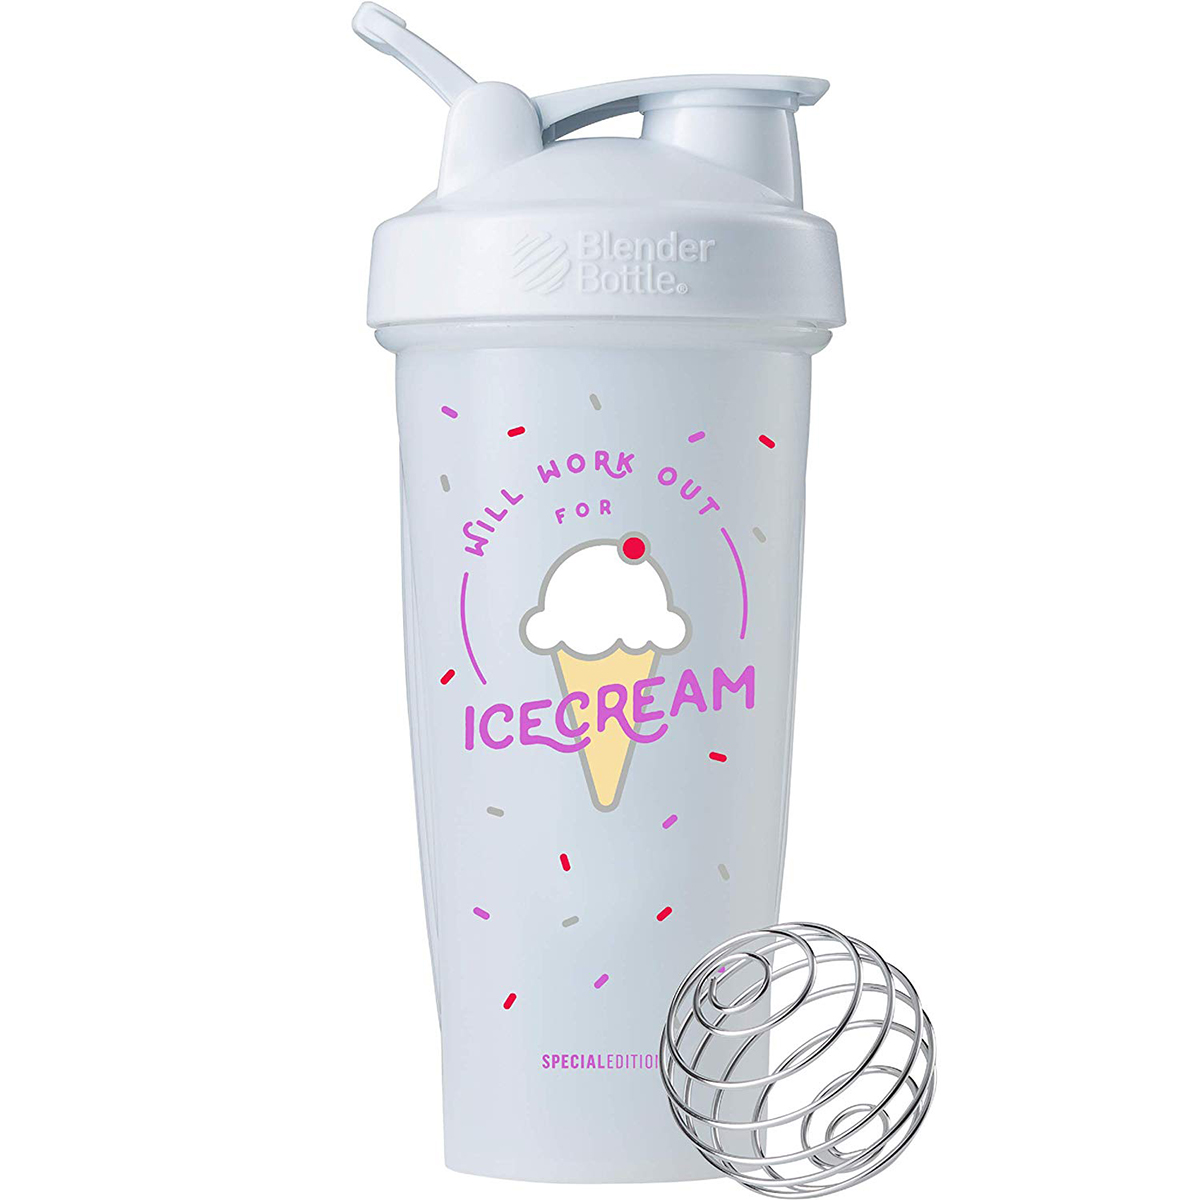 Blender Bottle Special Edition 28 oz. Shaker w/ Loop Top -Work Out For Ice Cream